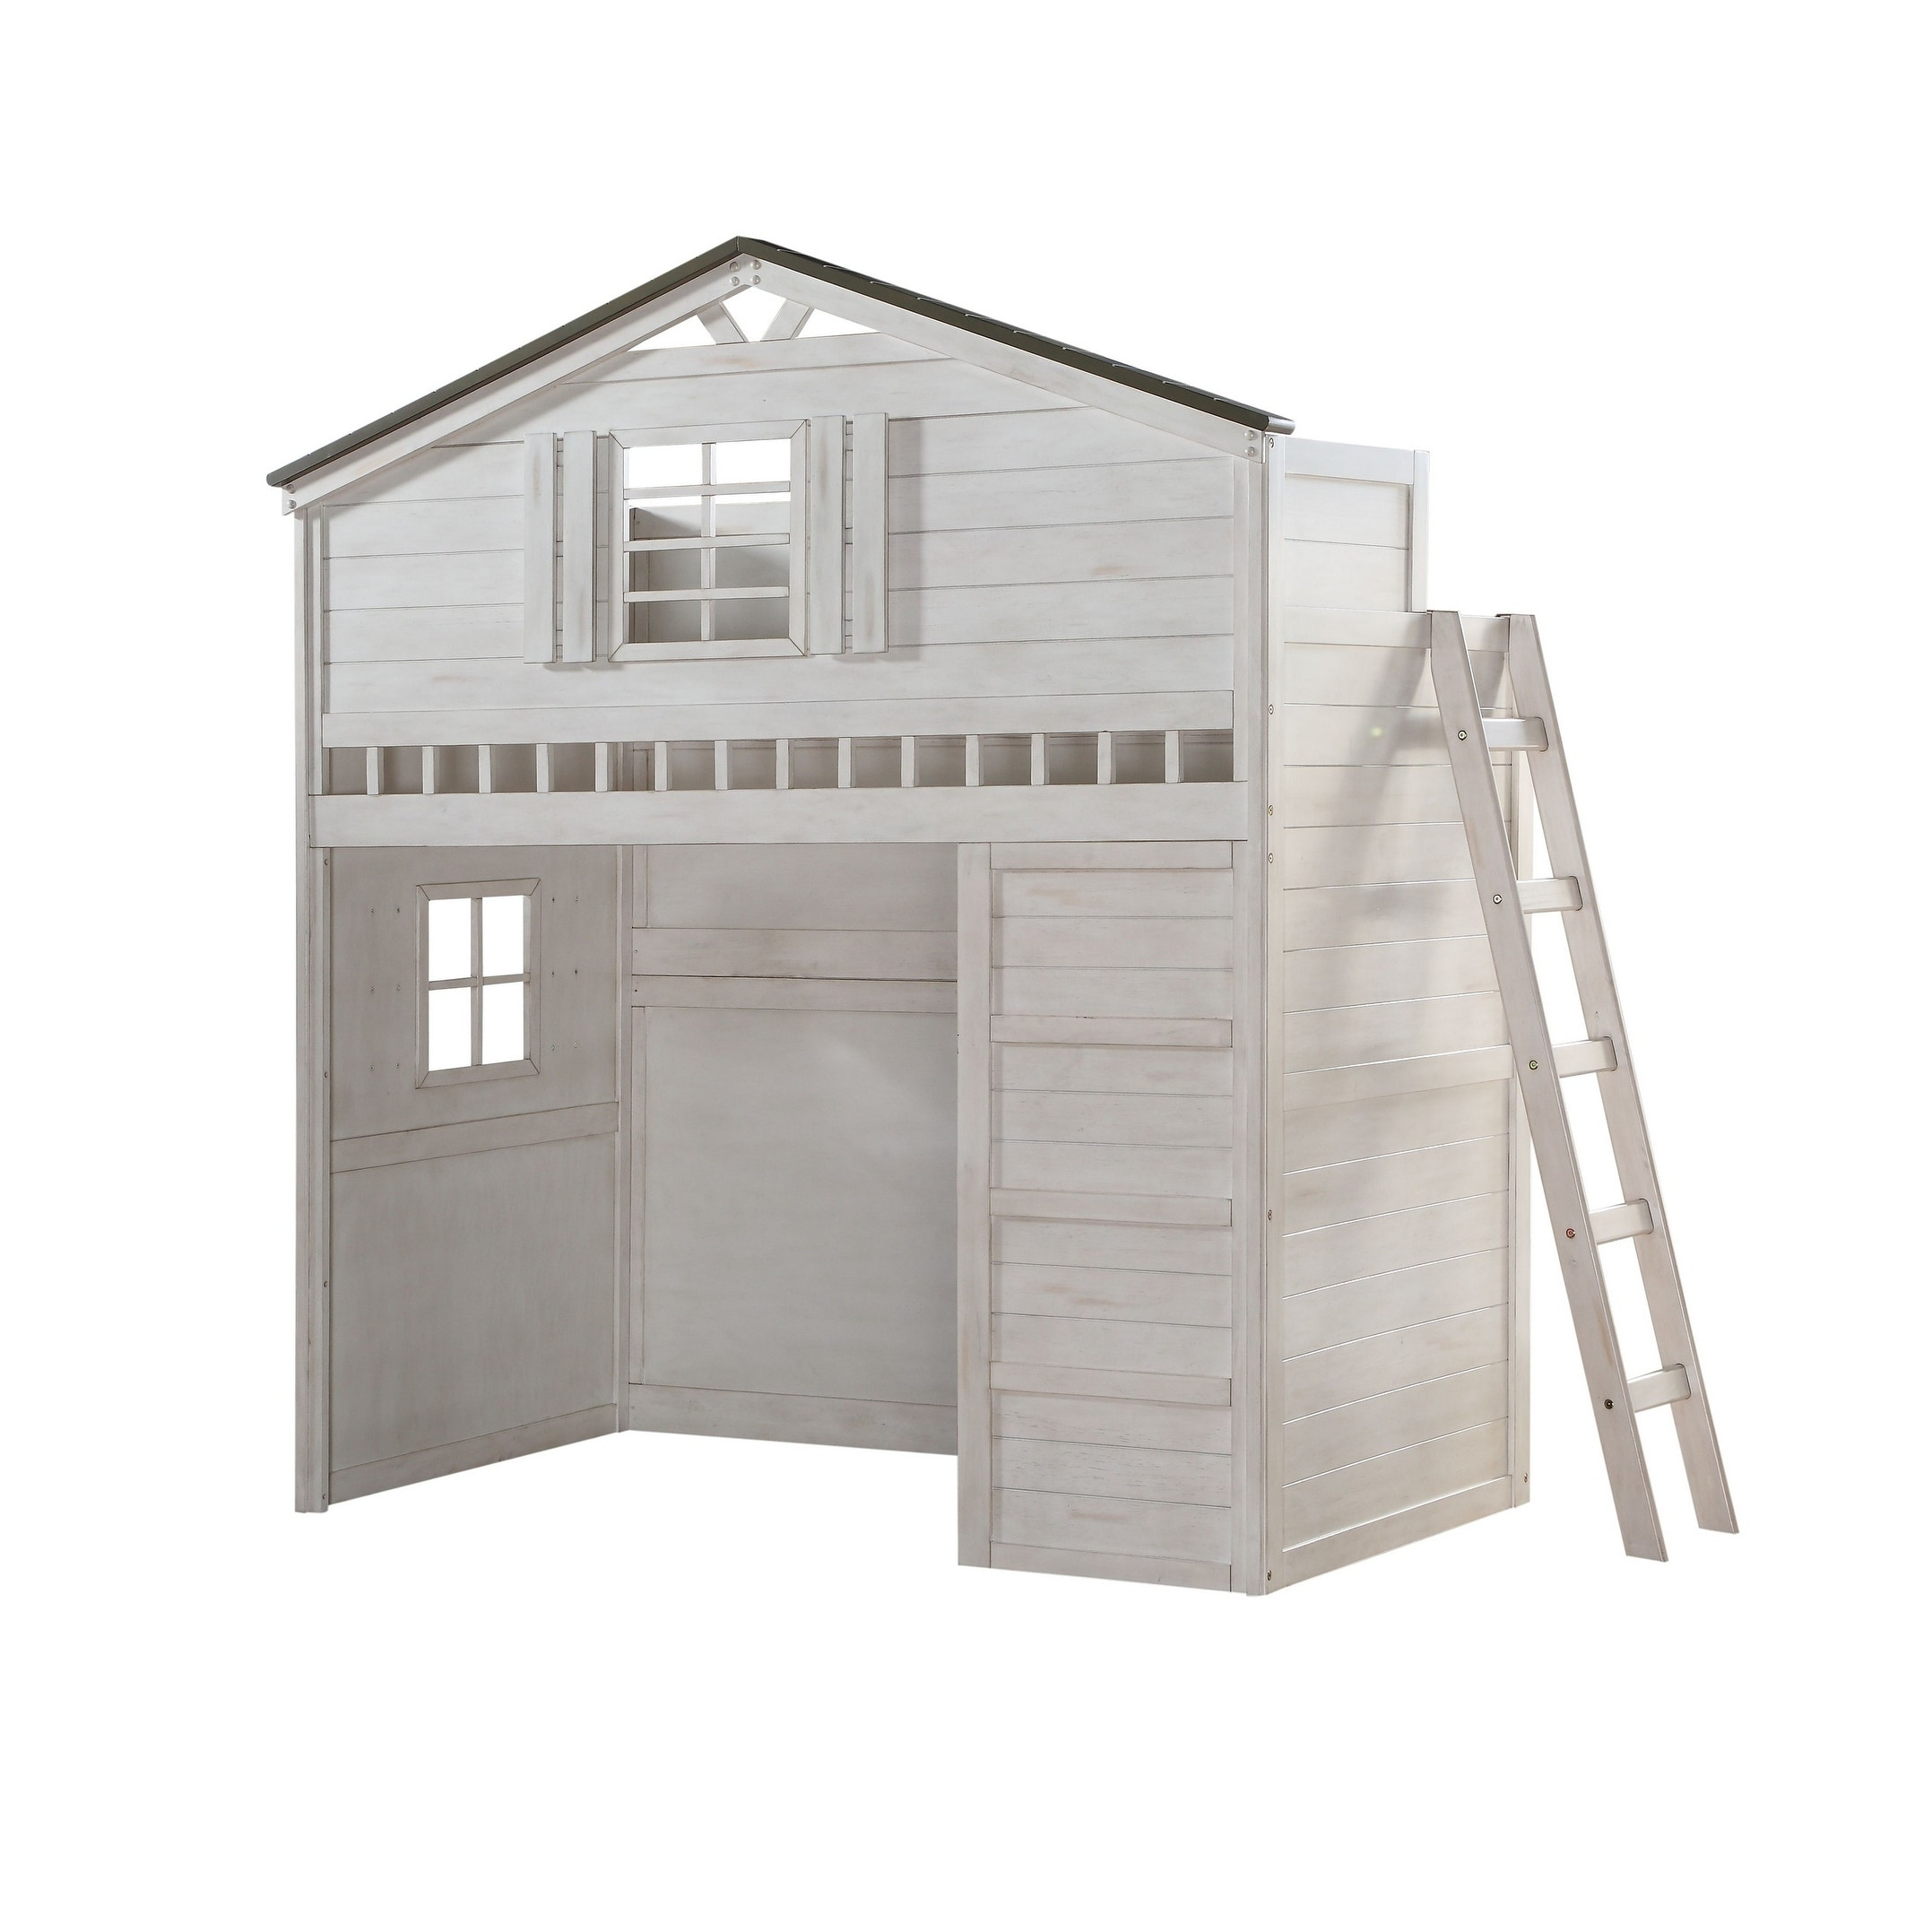 Shop Wooden Tree House Design Twin Size Loft Bed With Desk White And Gray On Sale Overstock 29714329